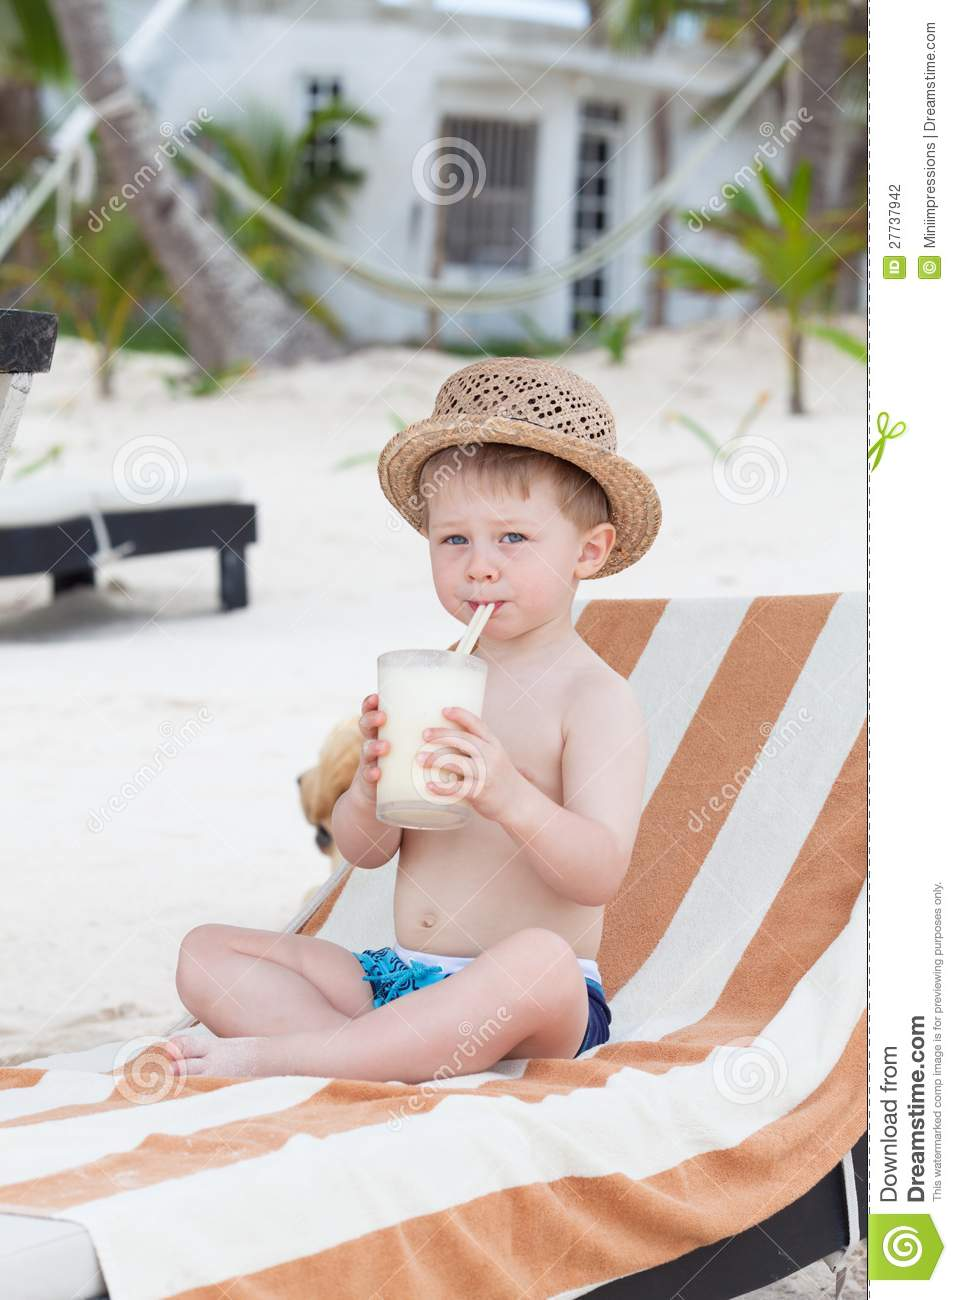 Cute toddler sipping milkshake on the beach